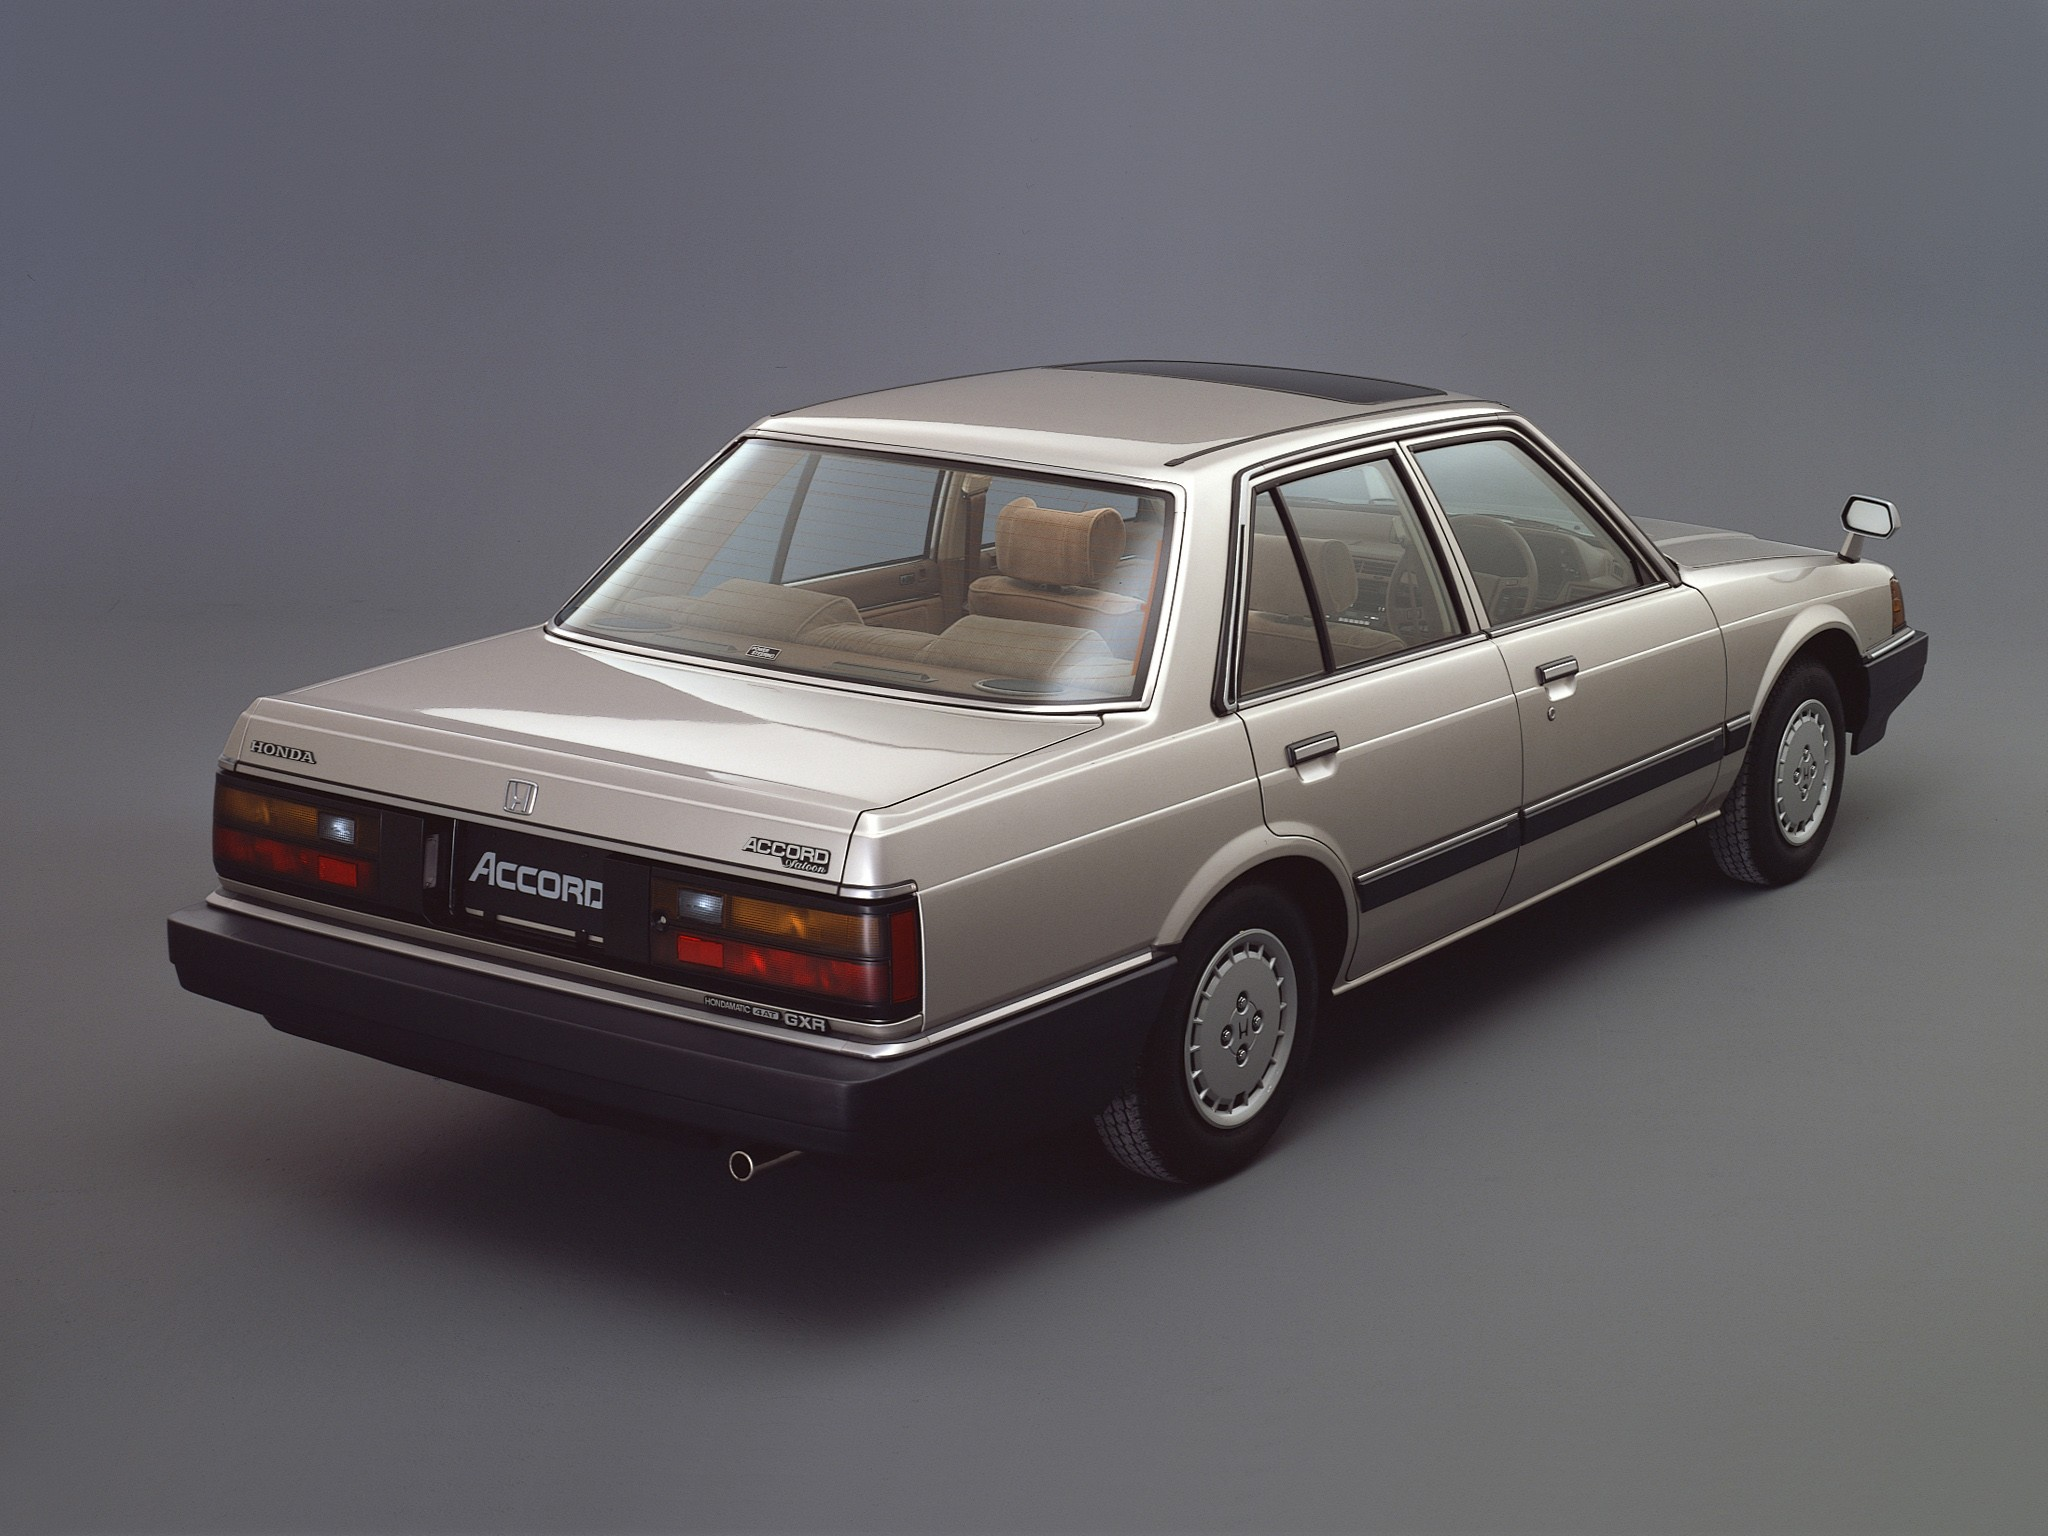 Honda Accord Evolution >> HONDA Accord 4 Doors specs - 1981, 1982, 1983, 1984, 1985 - autoevolution